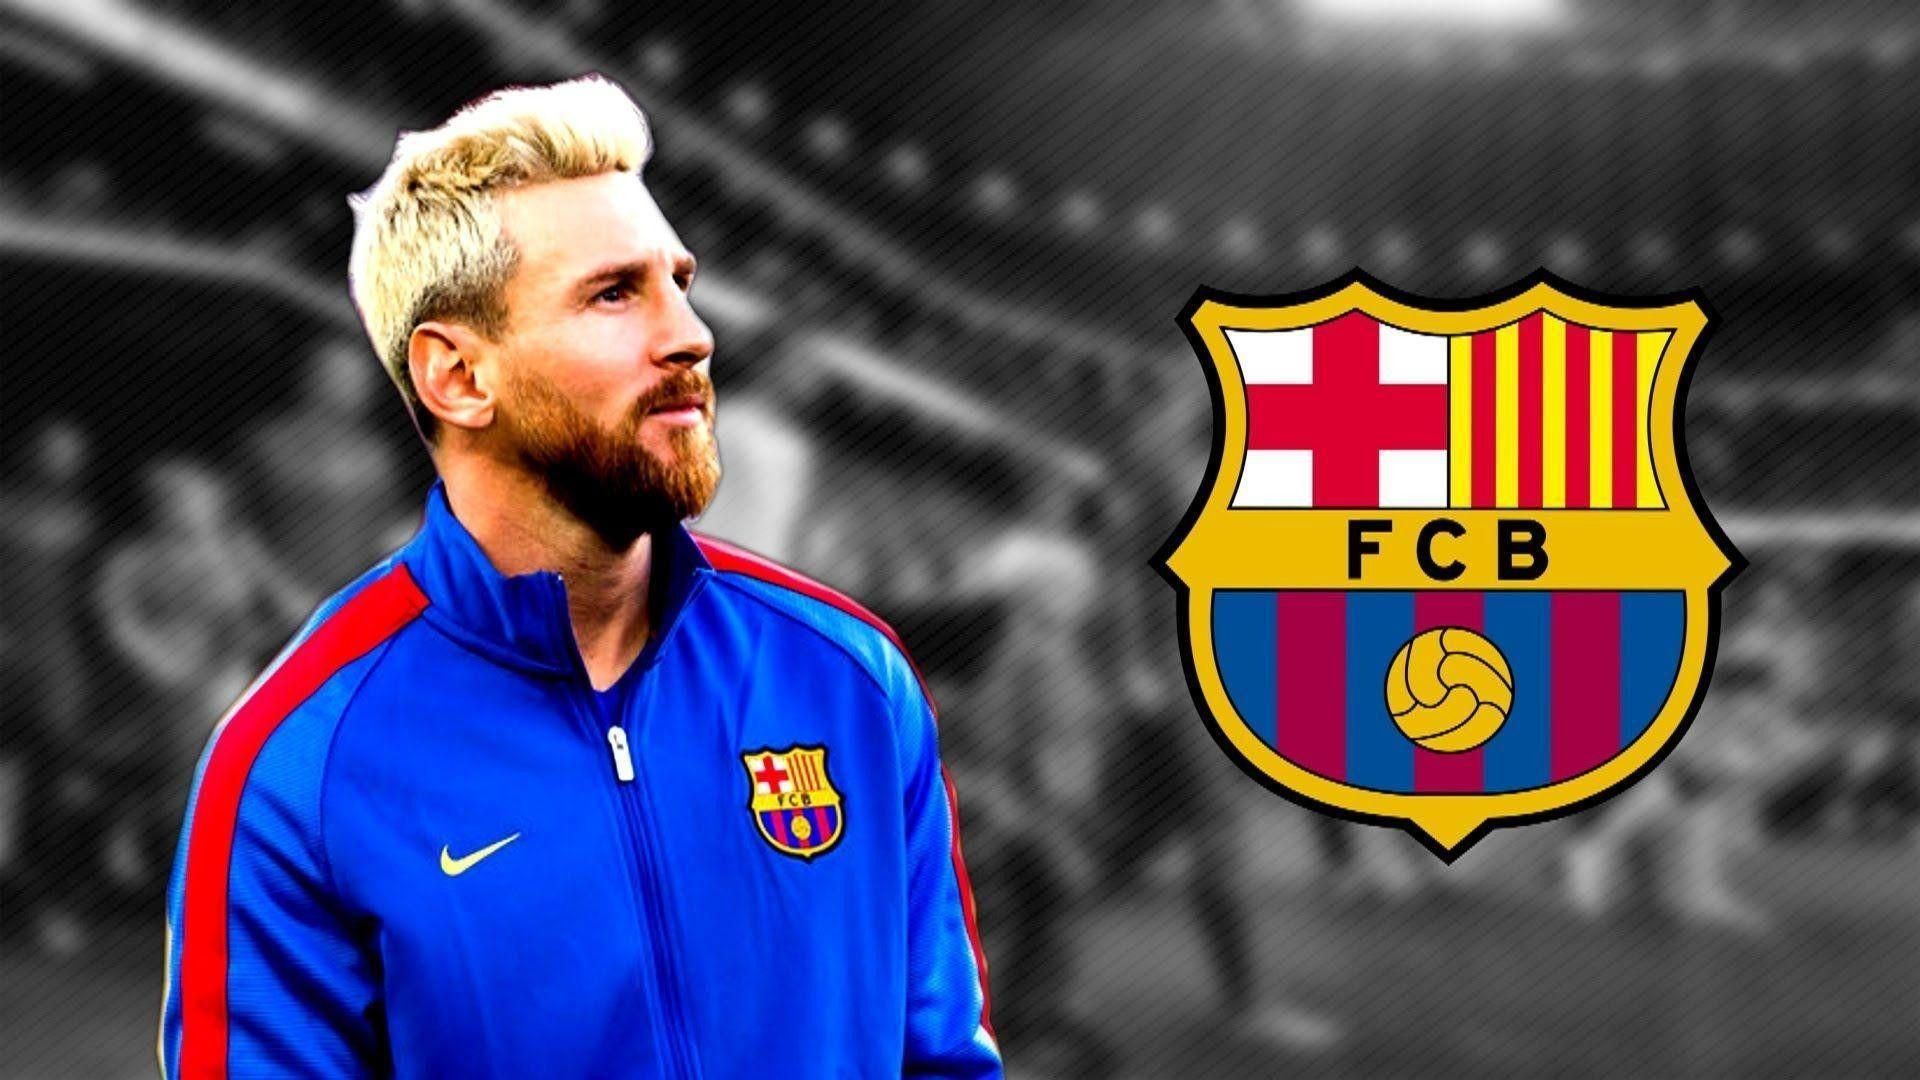 Lionel Messi 2018 Wallpapers HD 1080p ·①